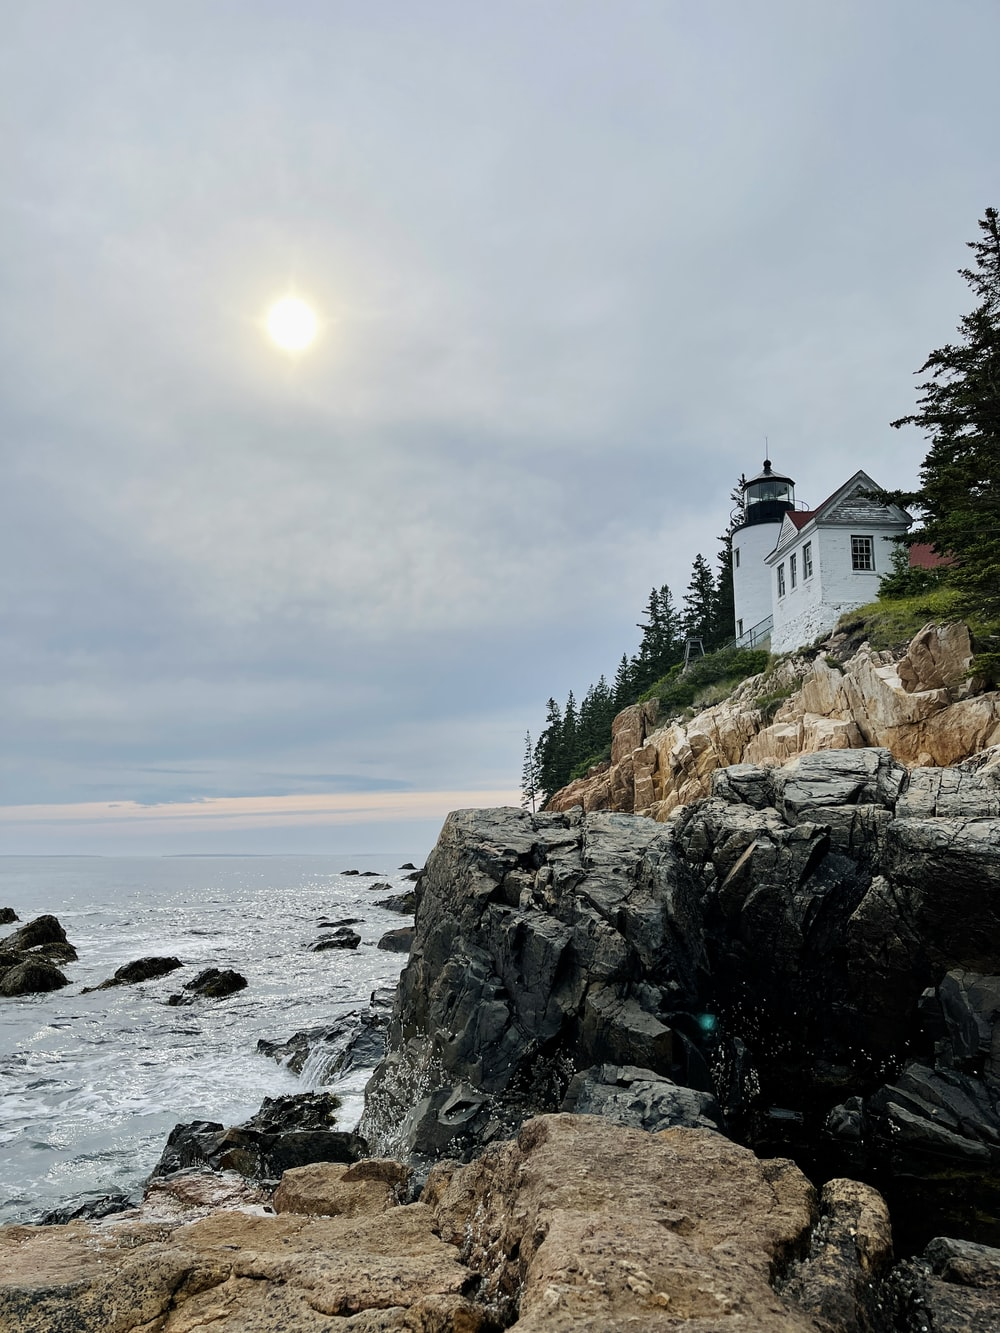 white and black house on rocky shore during daytime